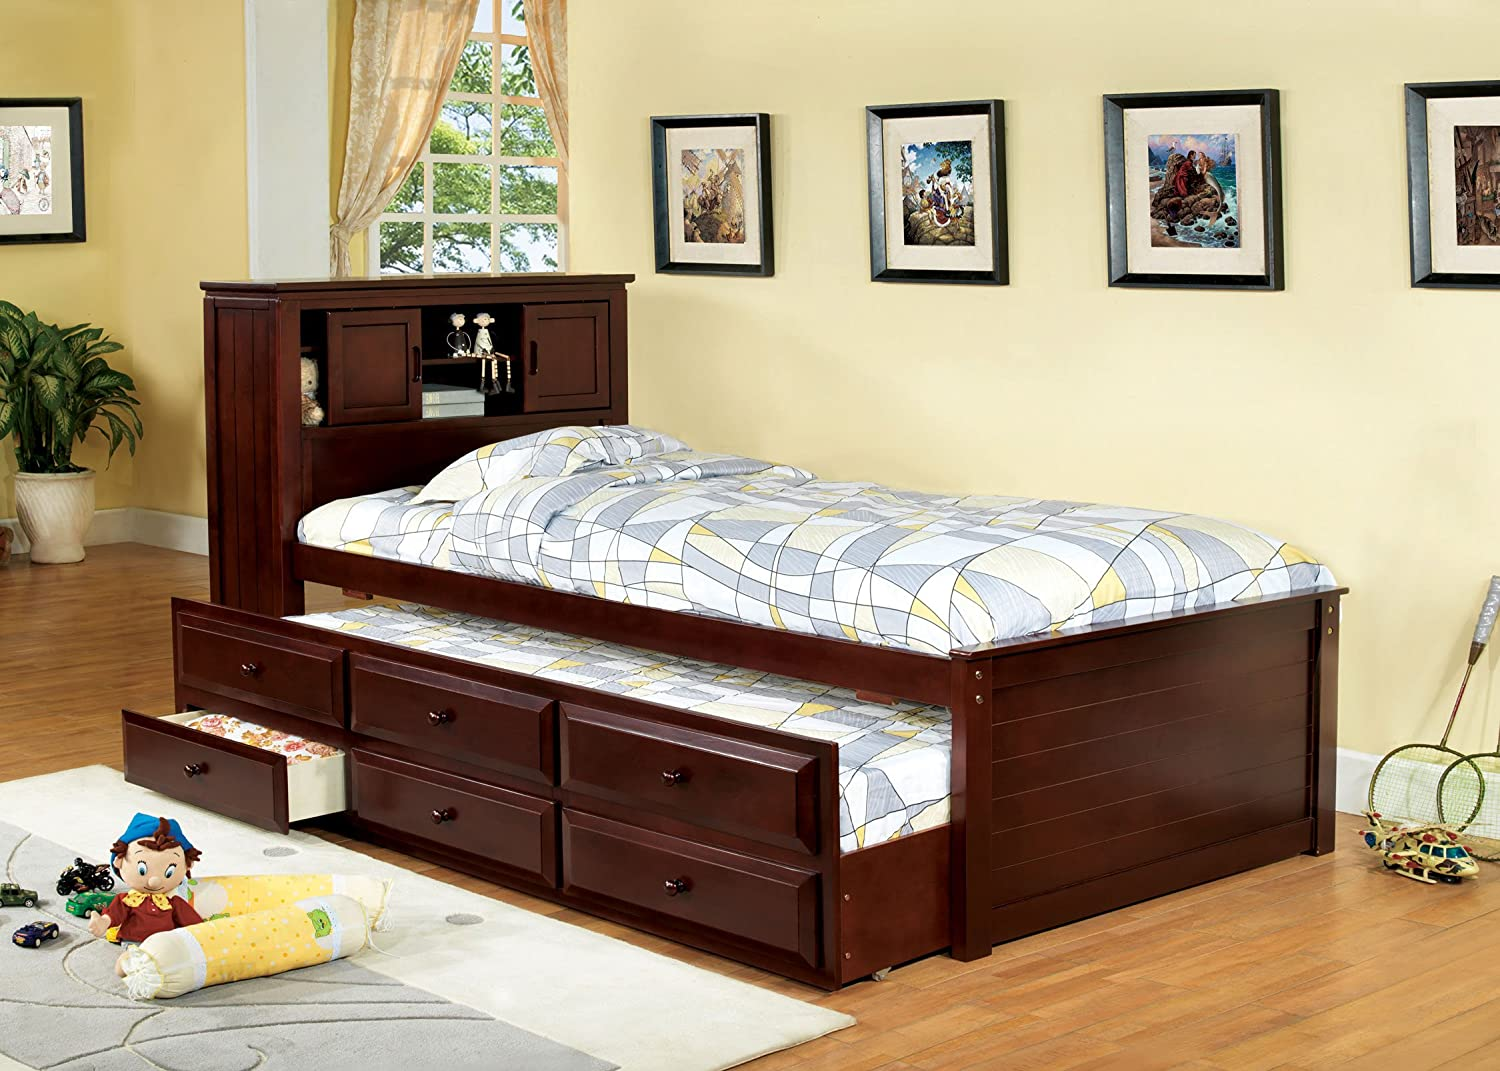 amazoncom furniture of america cameron twin captain bed with trundle and drawer set cherry kitchen u0026 dining